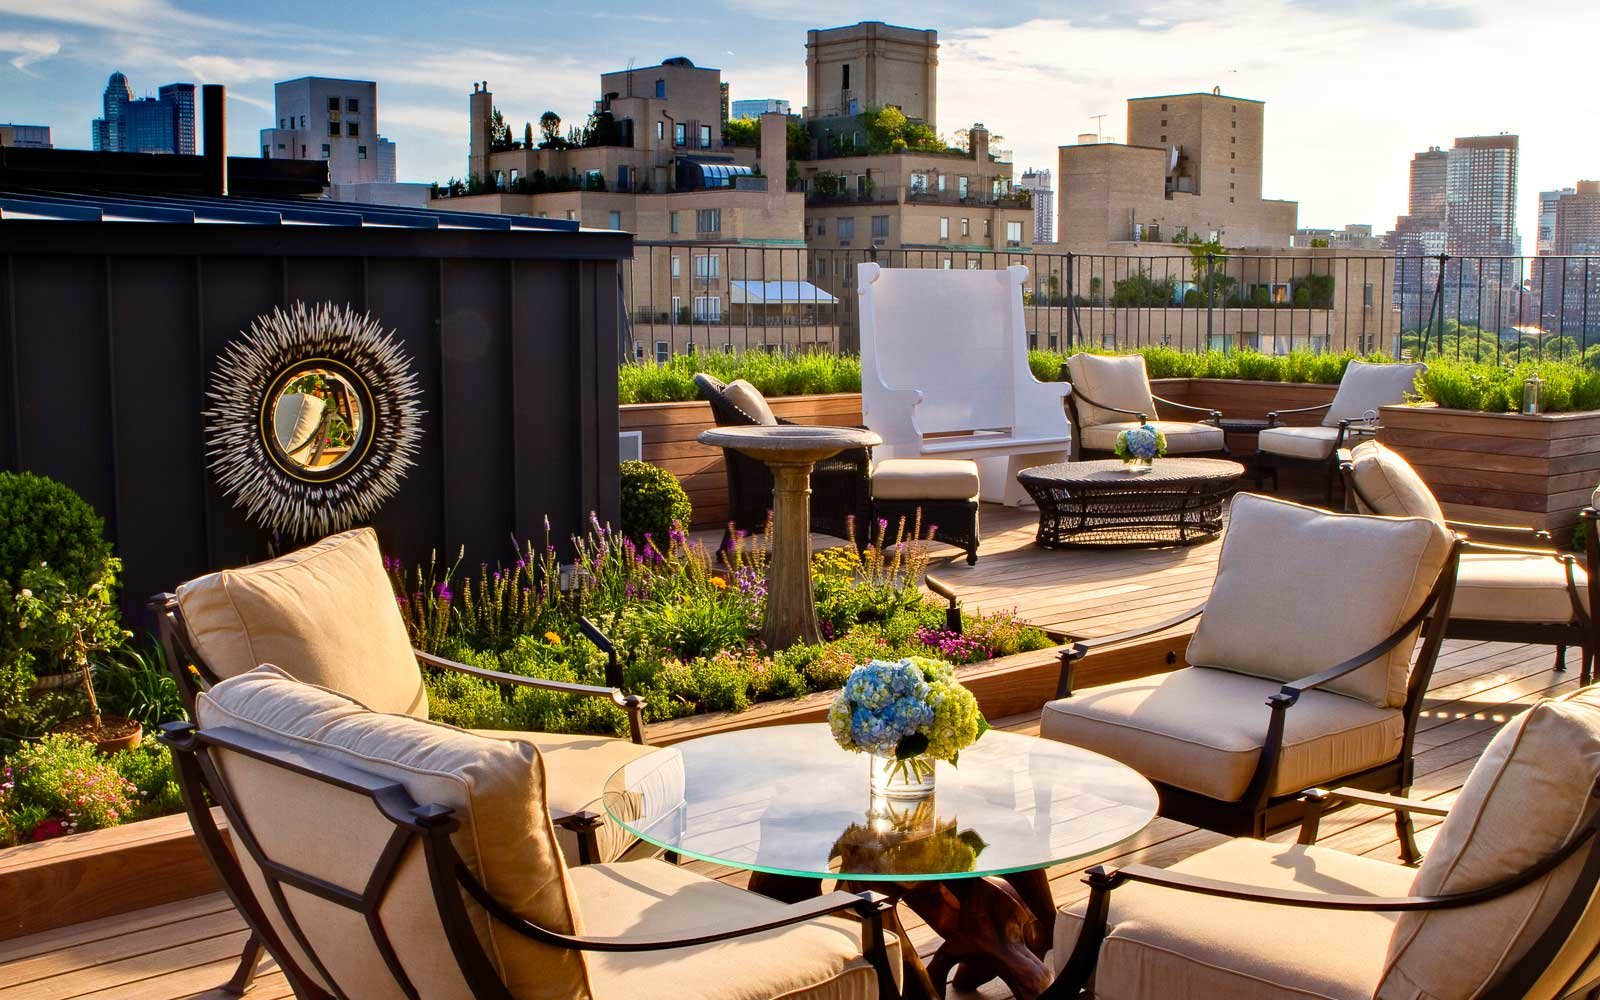 Roof garden at the Surrey Hotel in New York